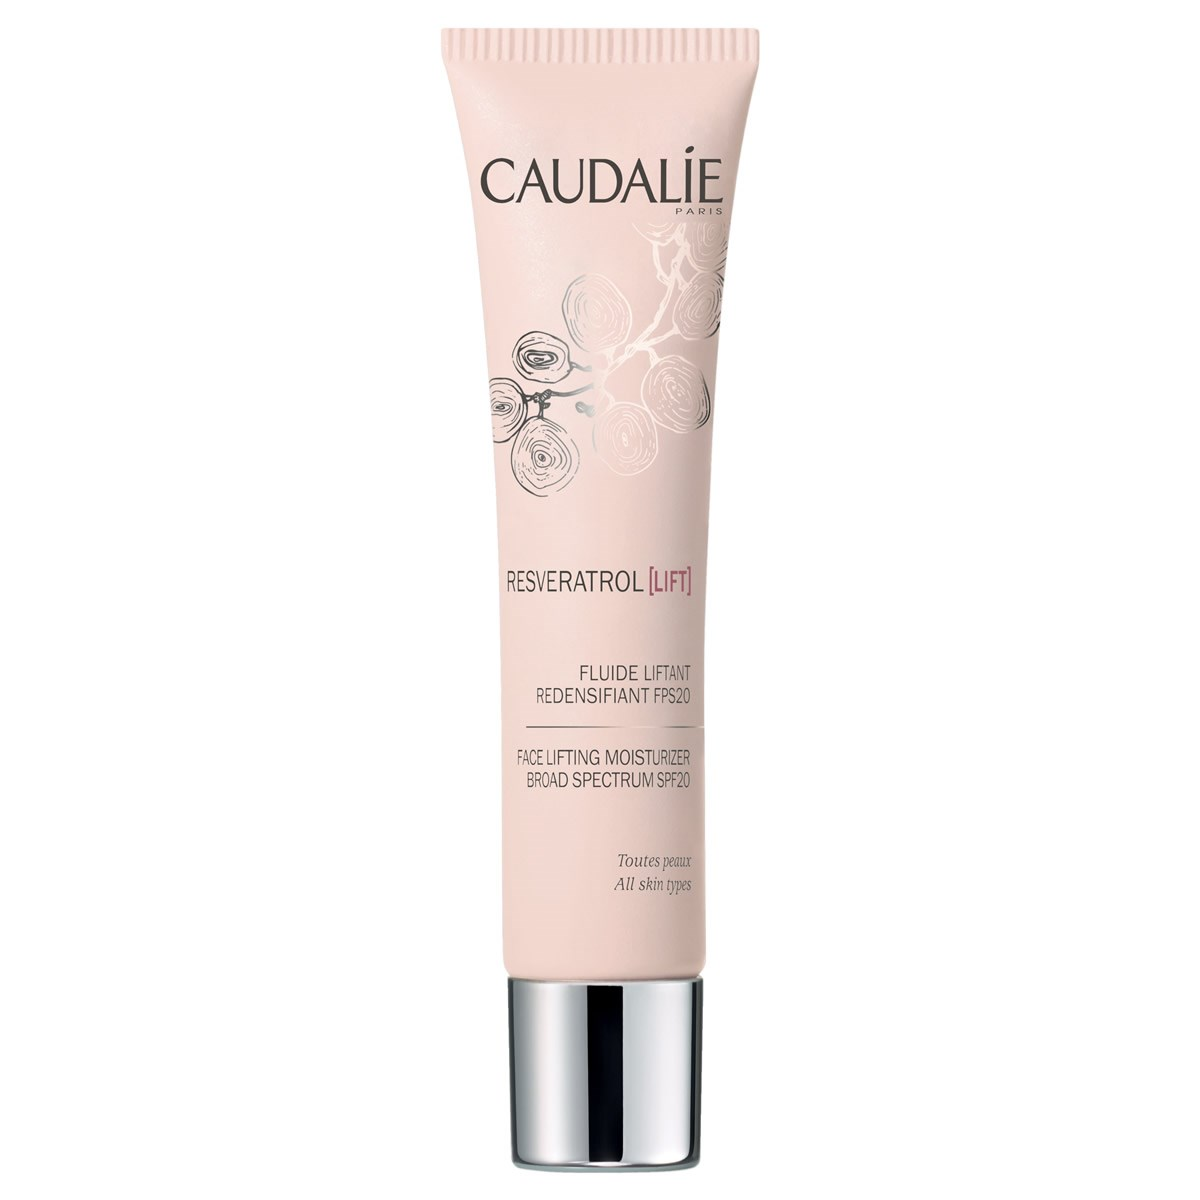 Caudalie Resveratrol Lift Face Lifting Moisturiser Board Spectrum SPF 20